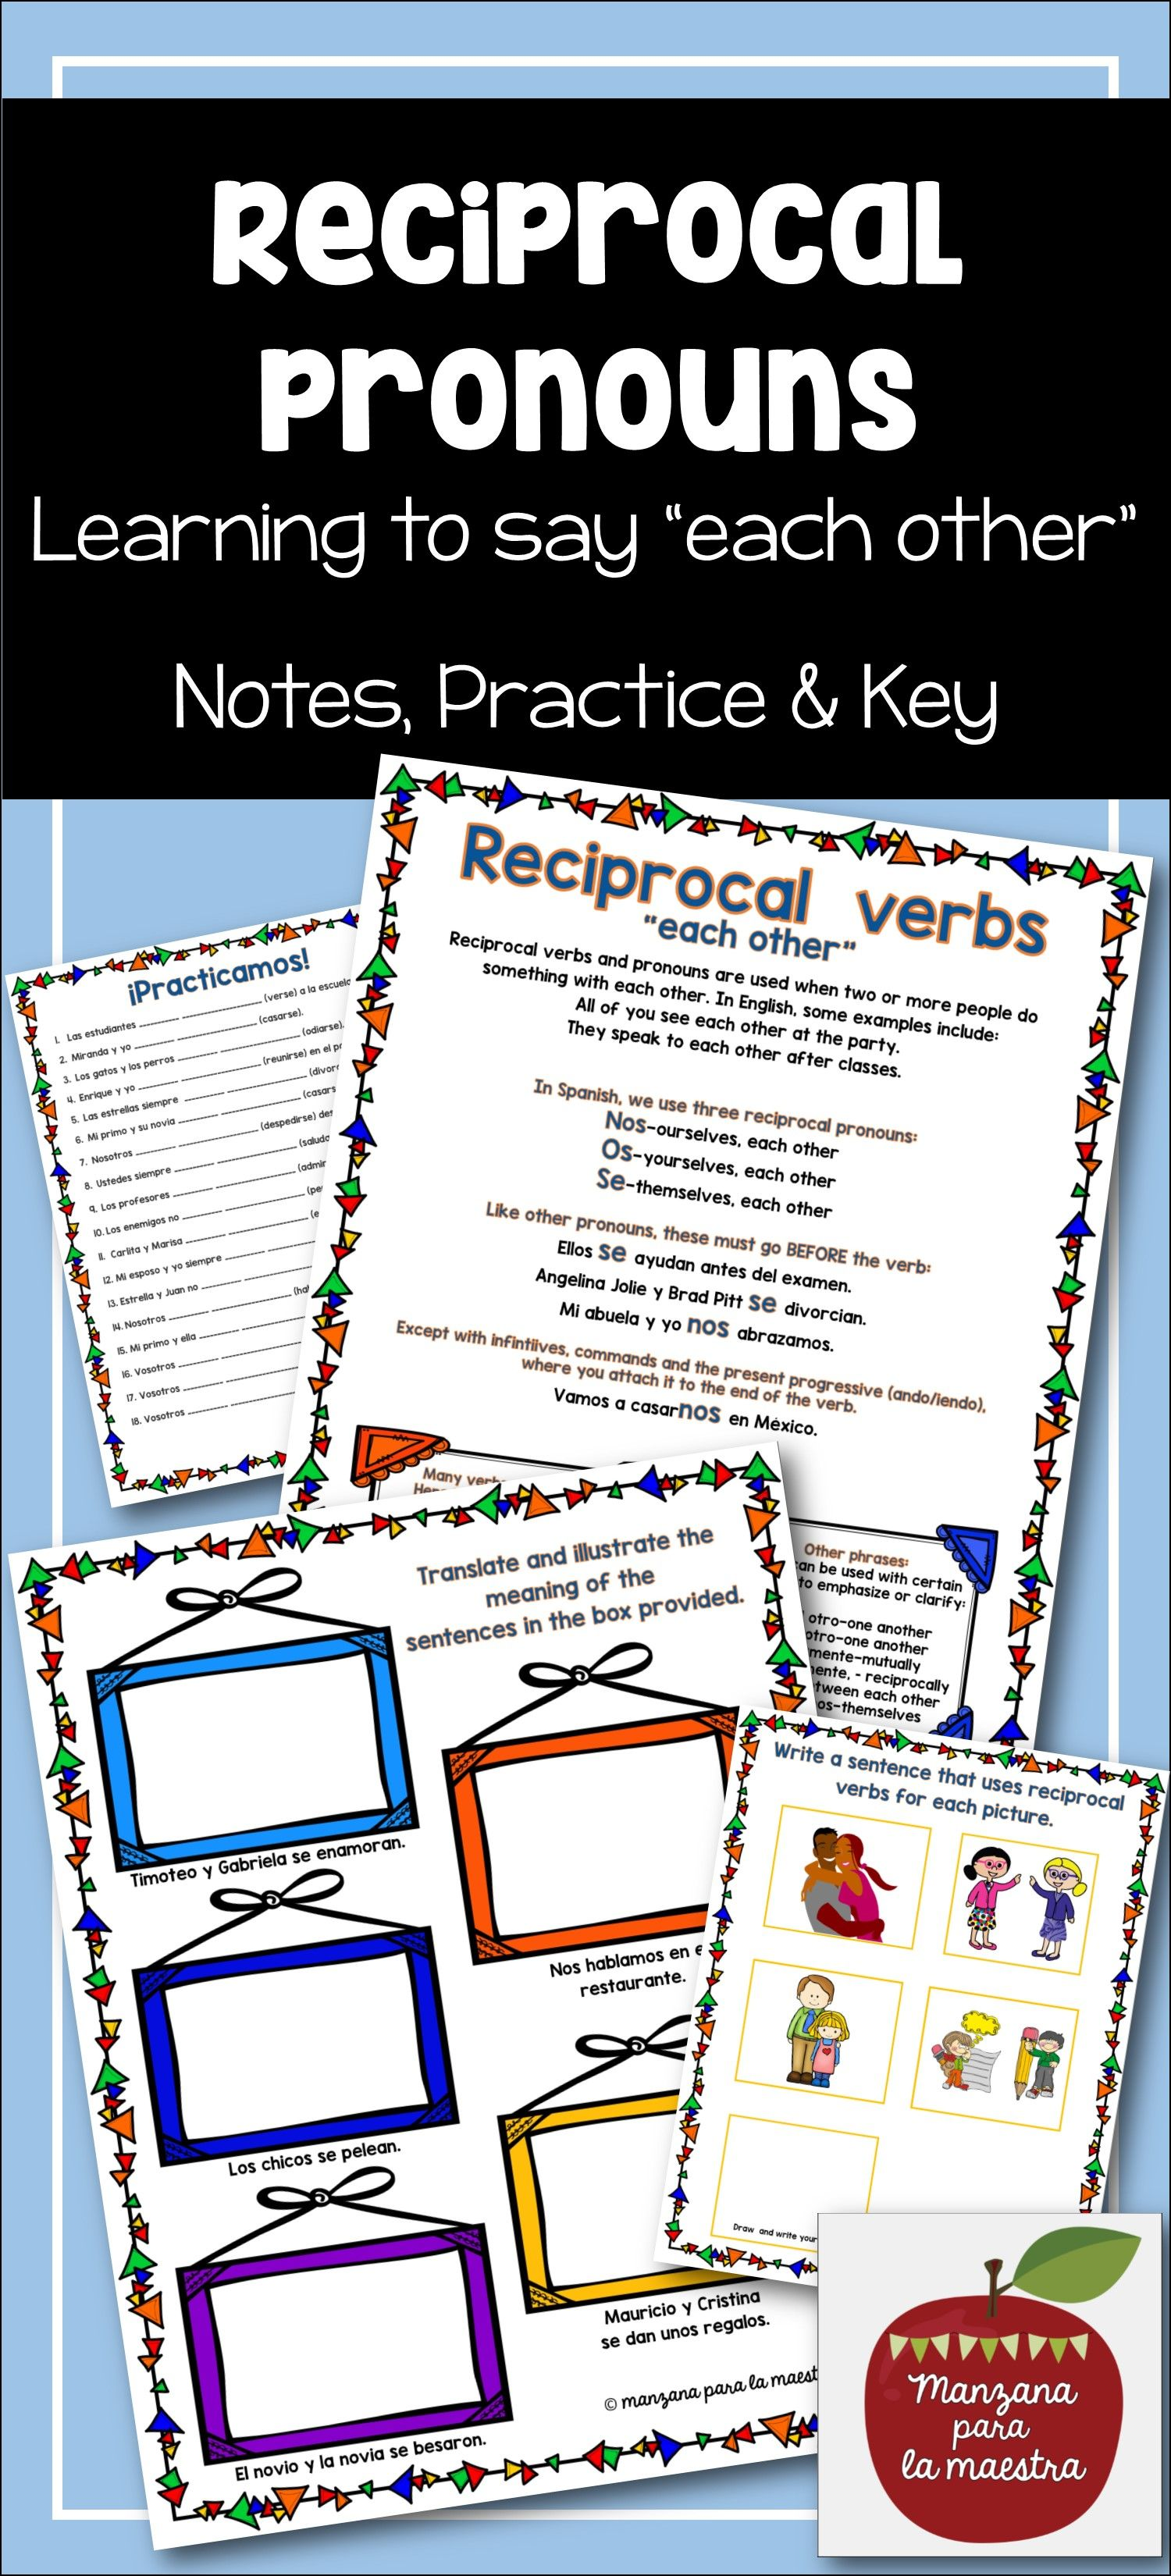 Reciprocal Verbs And Pronouns In Spanish